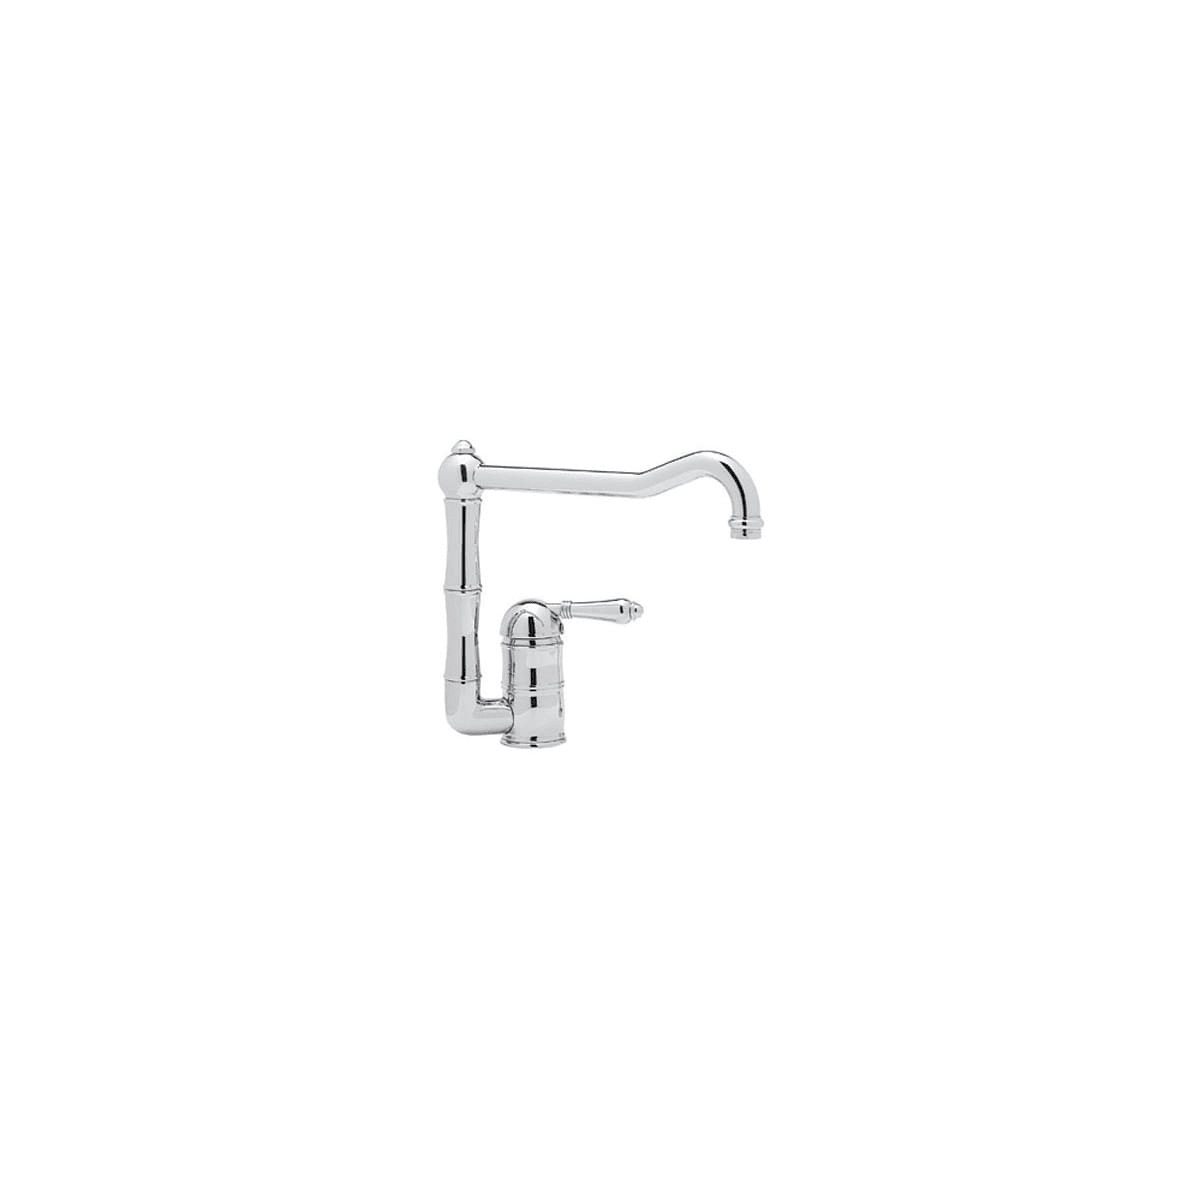 Rohl A3608/11LPAPC-2 Polished Chrome Country Kitchen Faucet ...